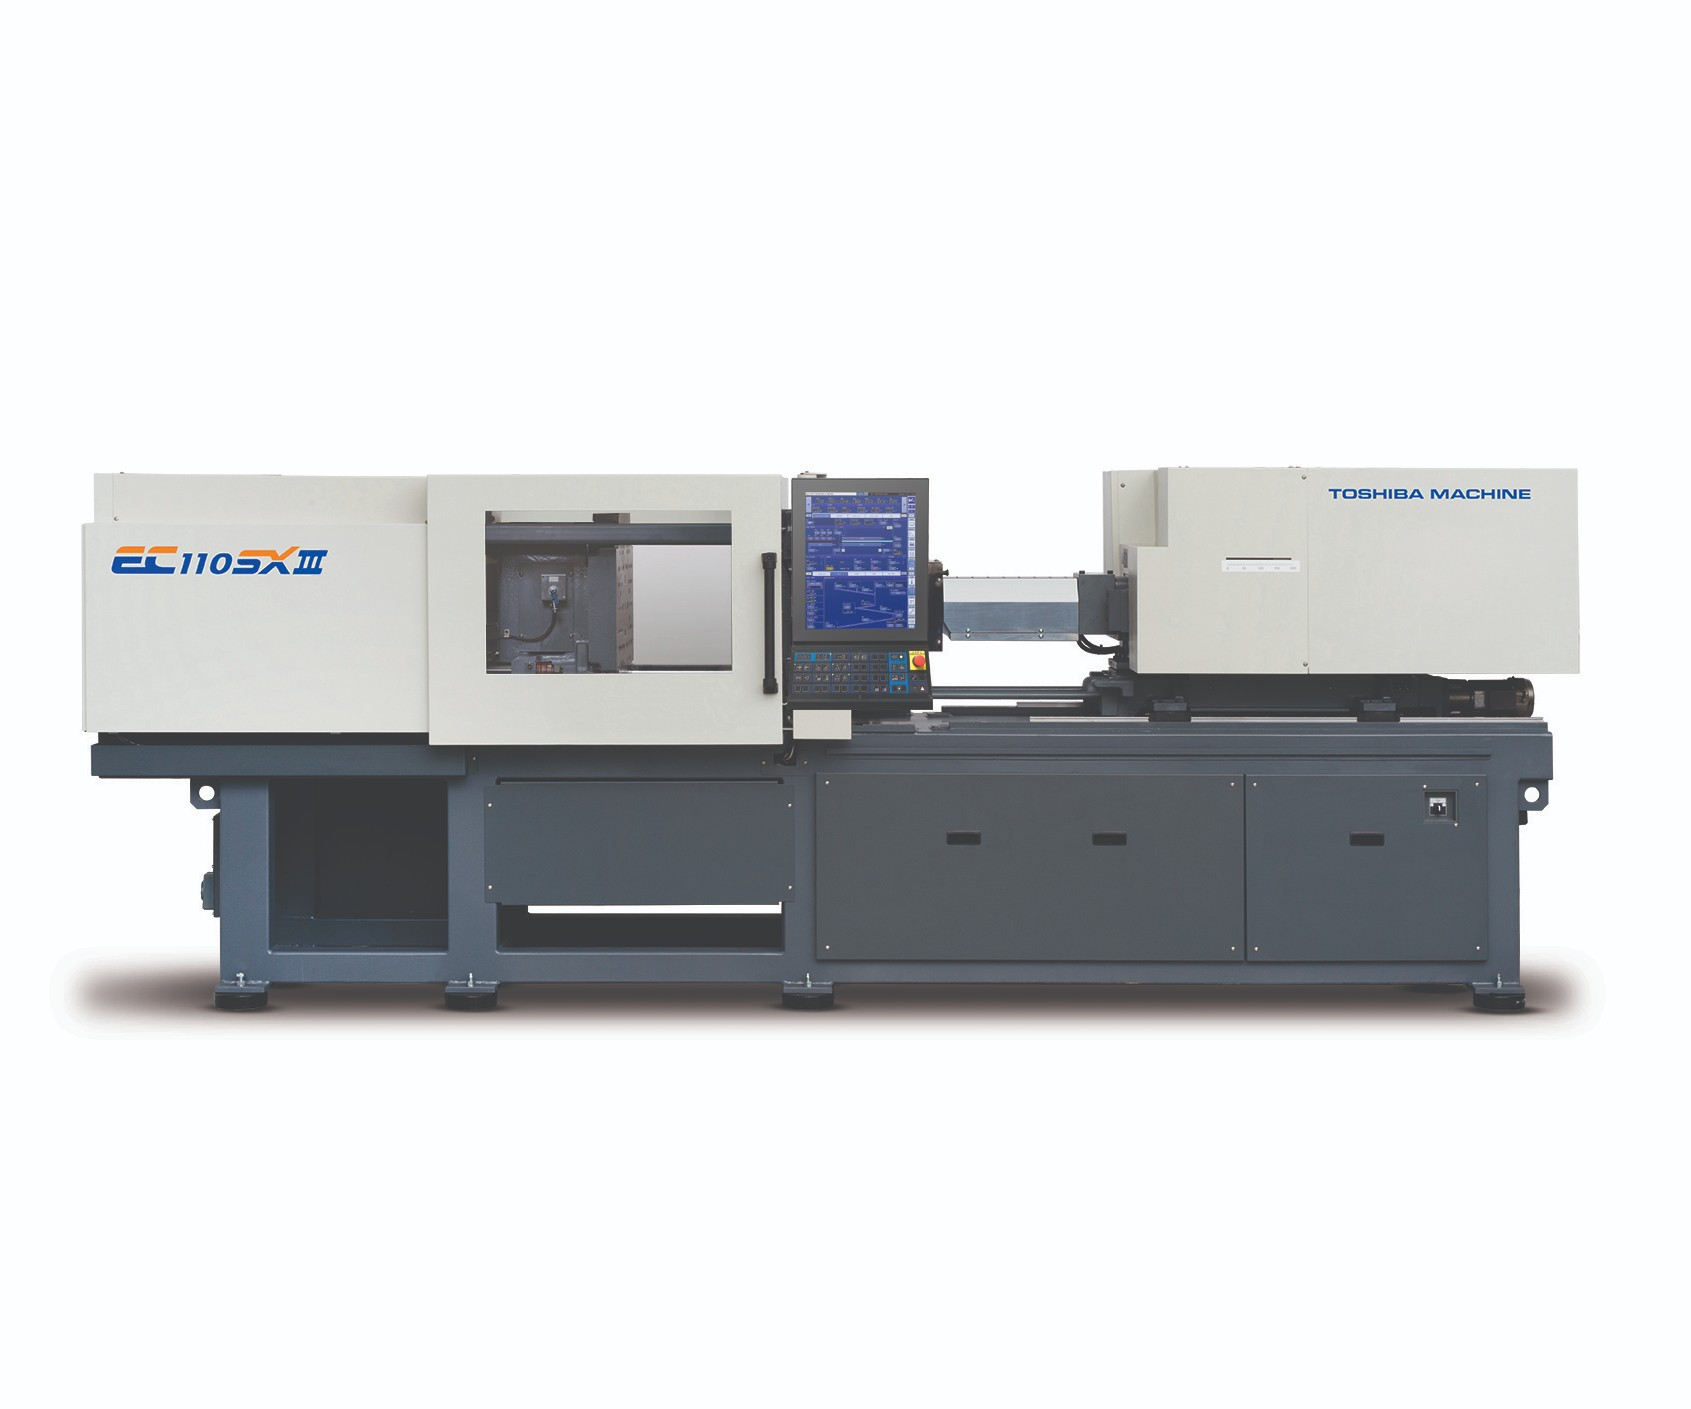 Toshiba's new ECSXIII all-electric injection molding machine with new Injectvisor V70 controller.